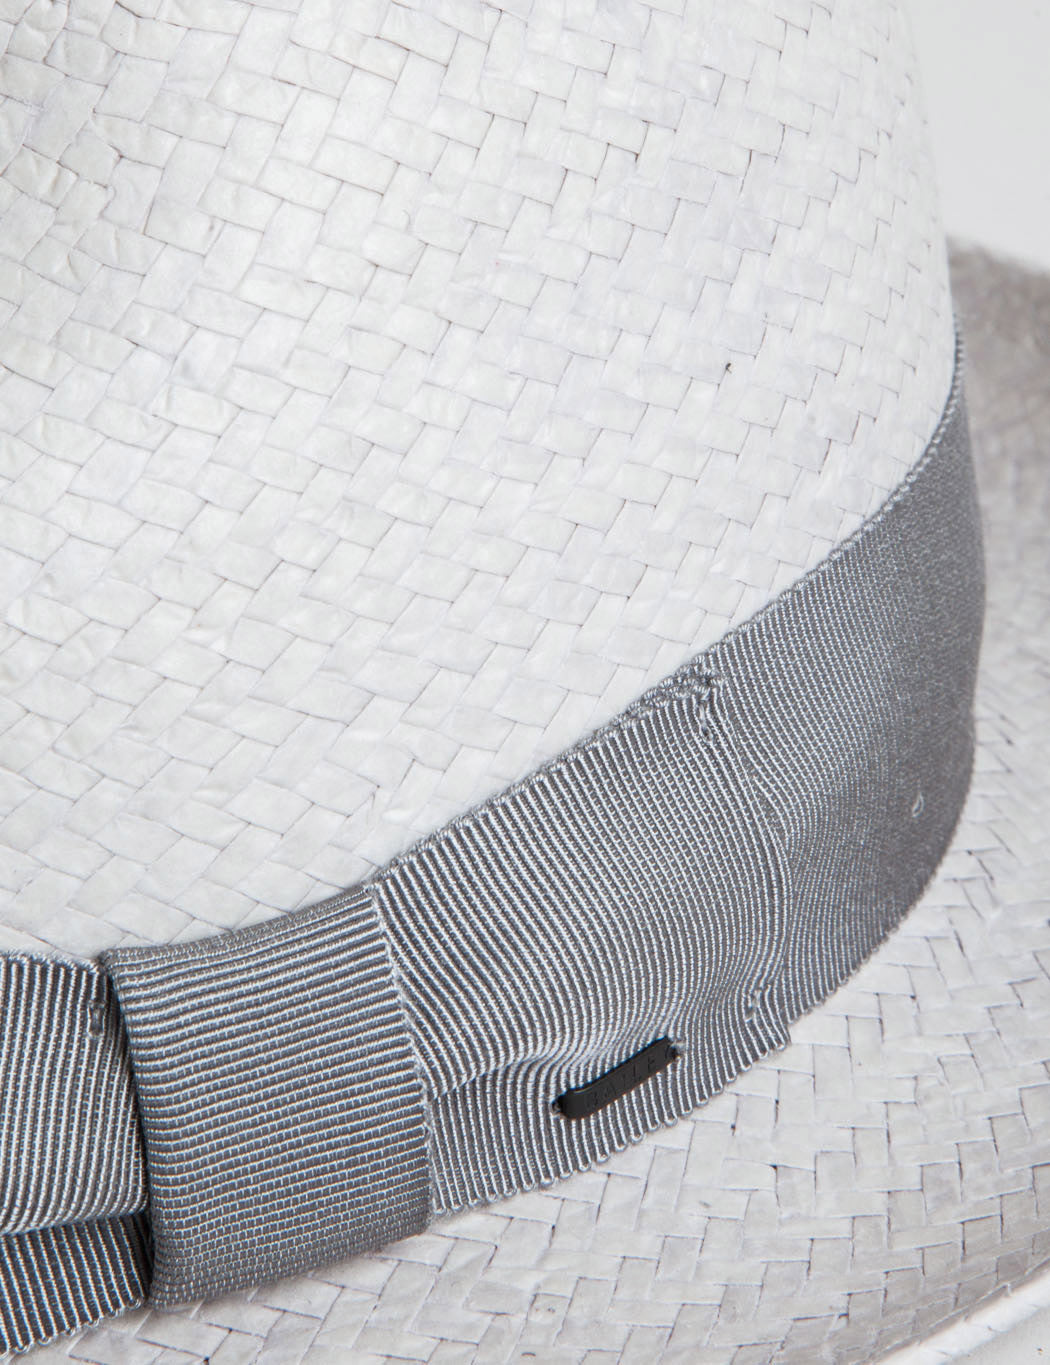 Bailey Lando Straw Triby Hat - Overcast Grey